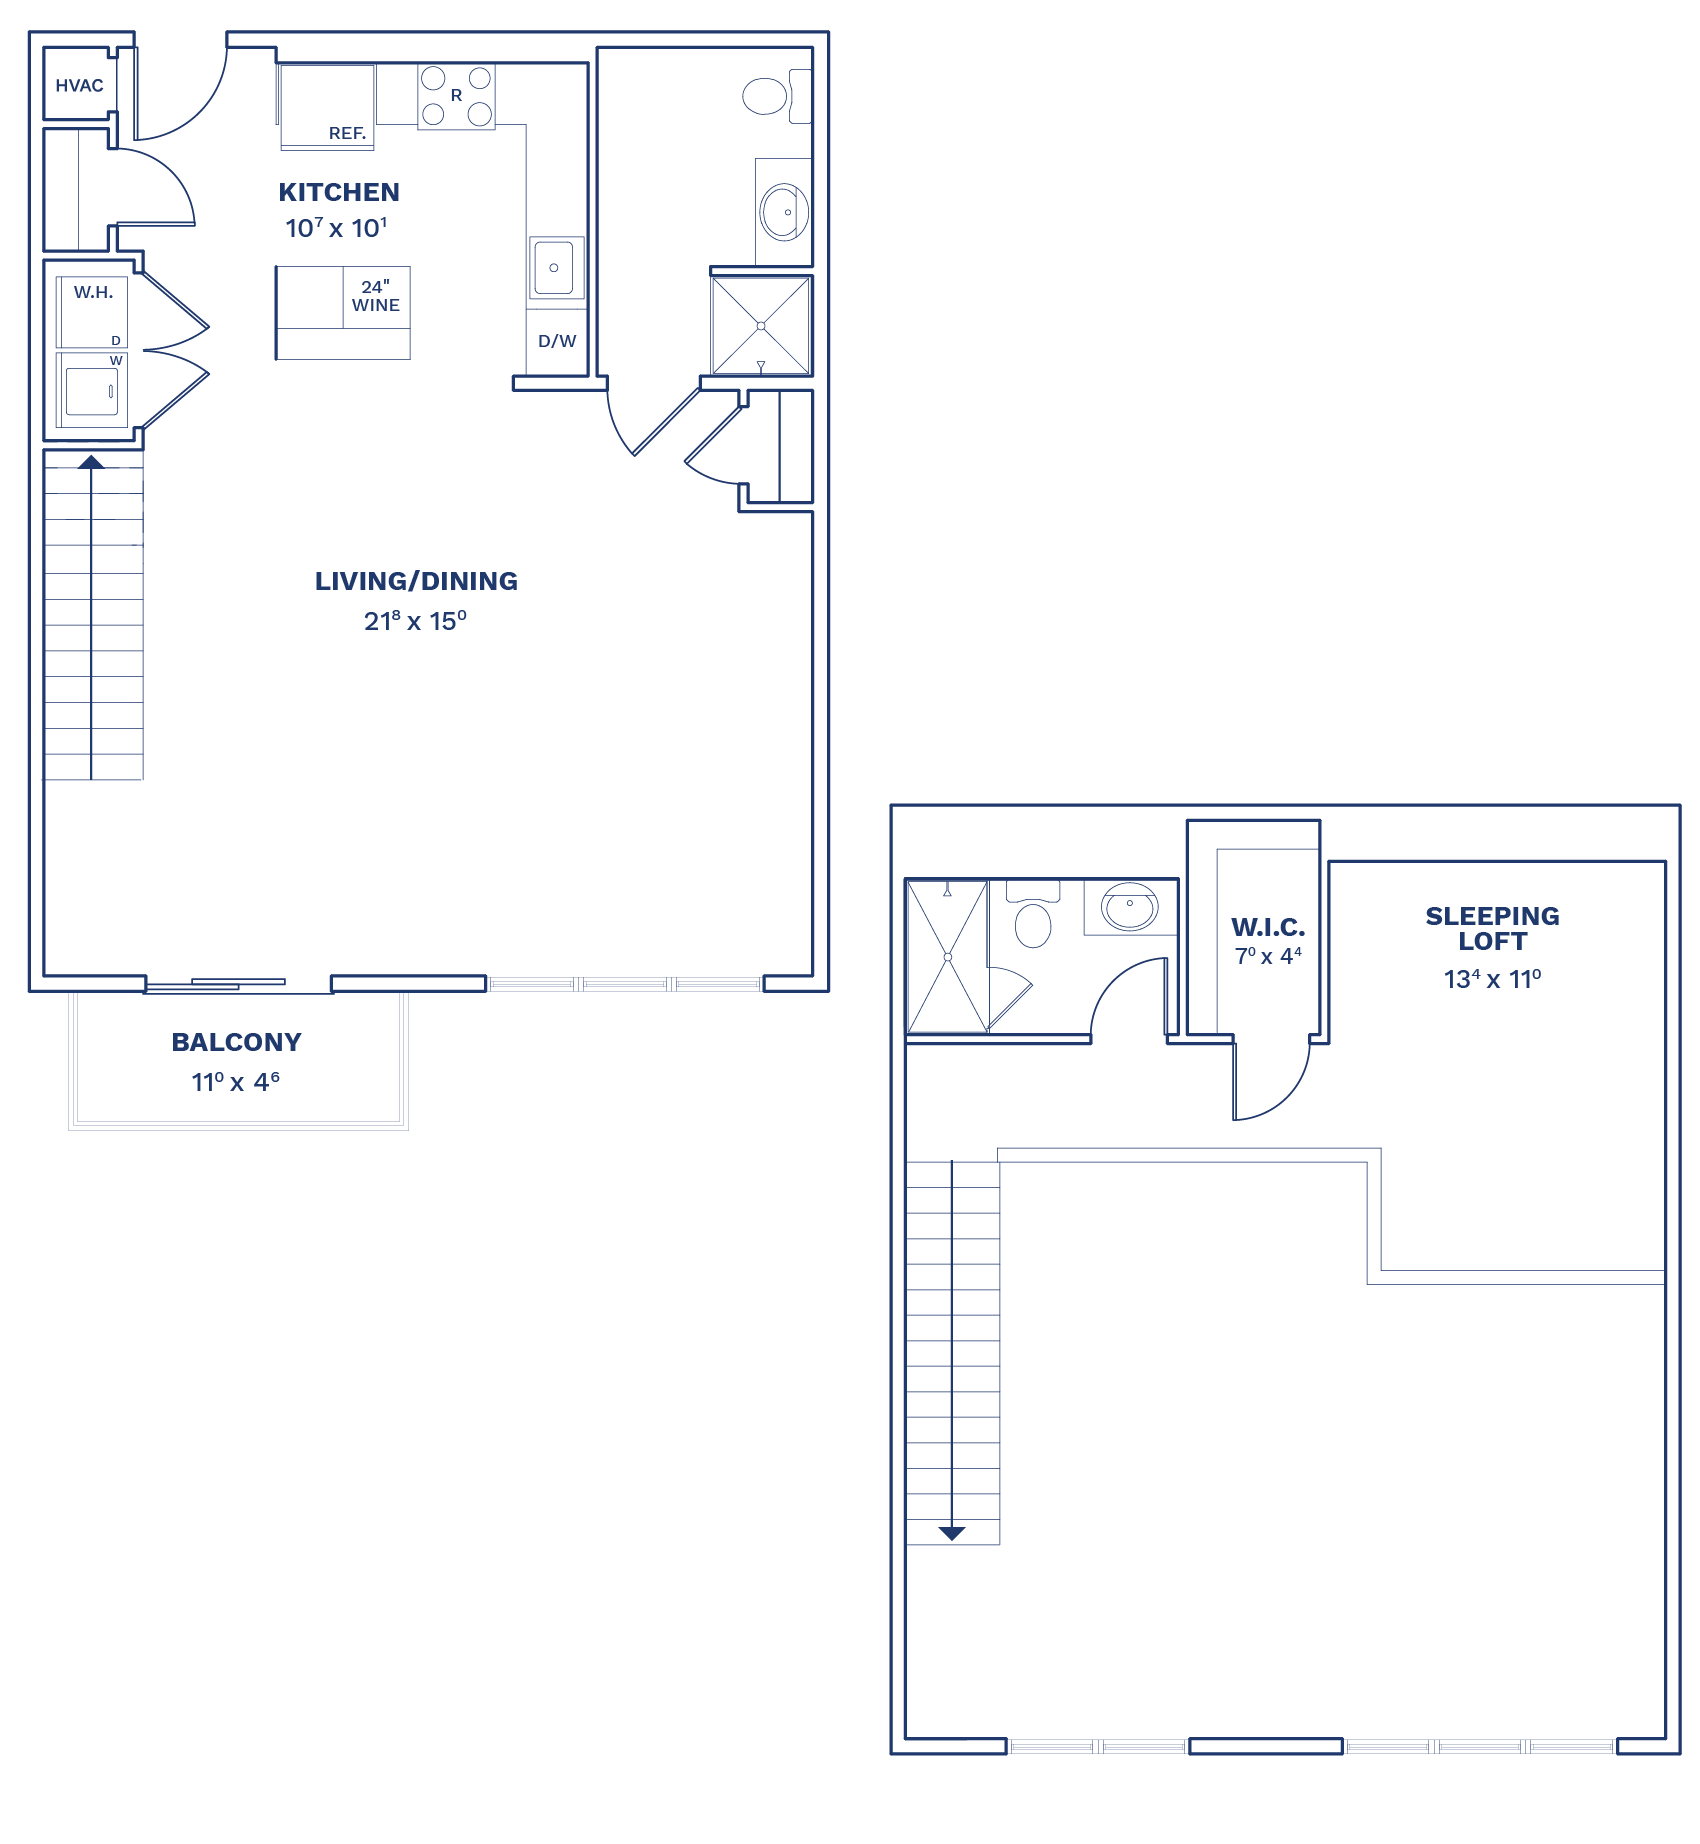 Floorplan of Unit A2 Loft